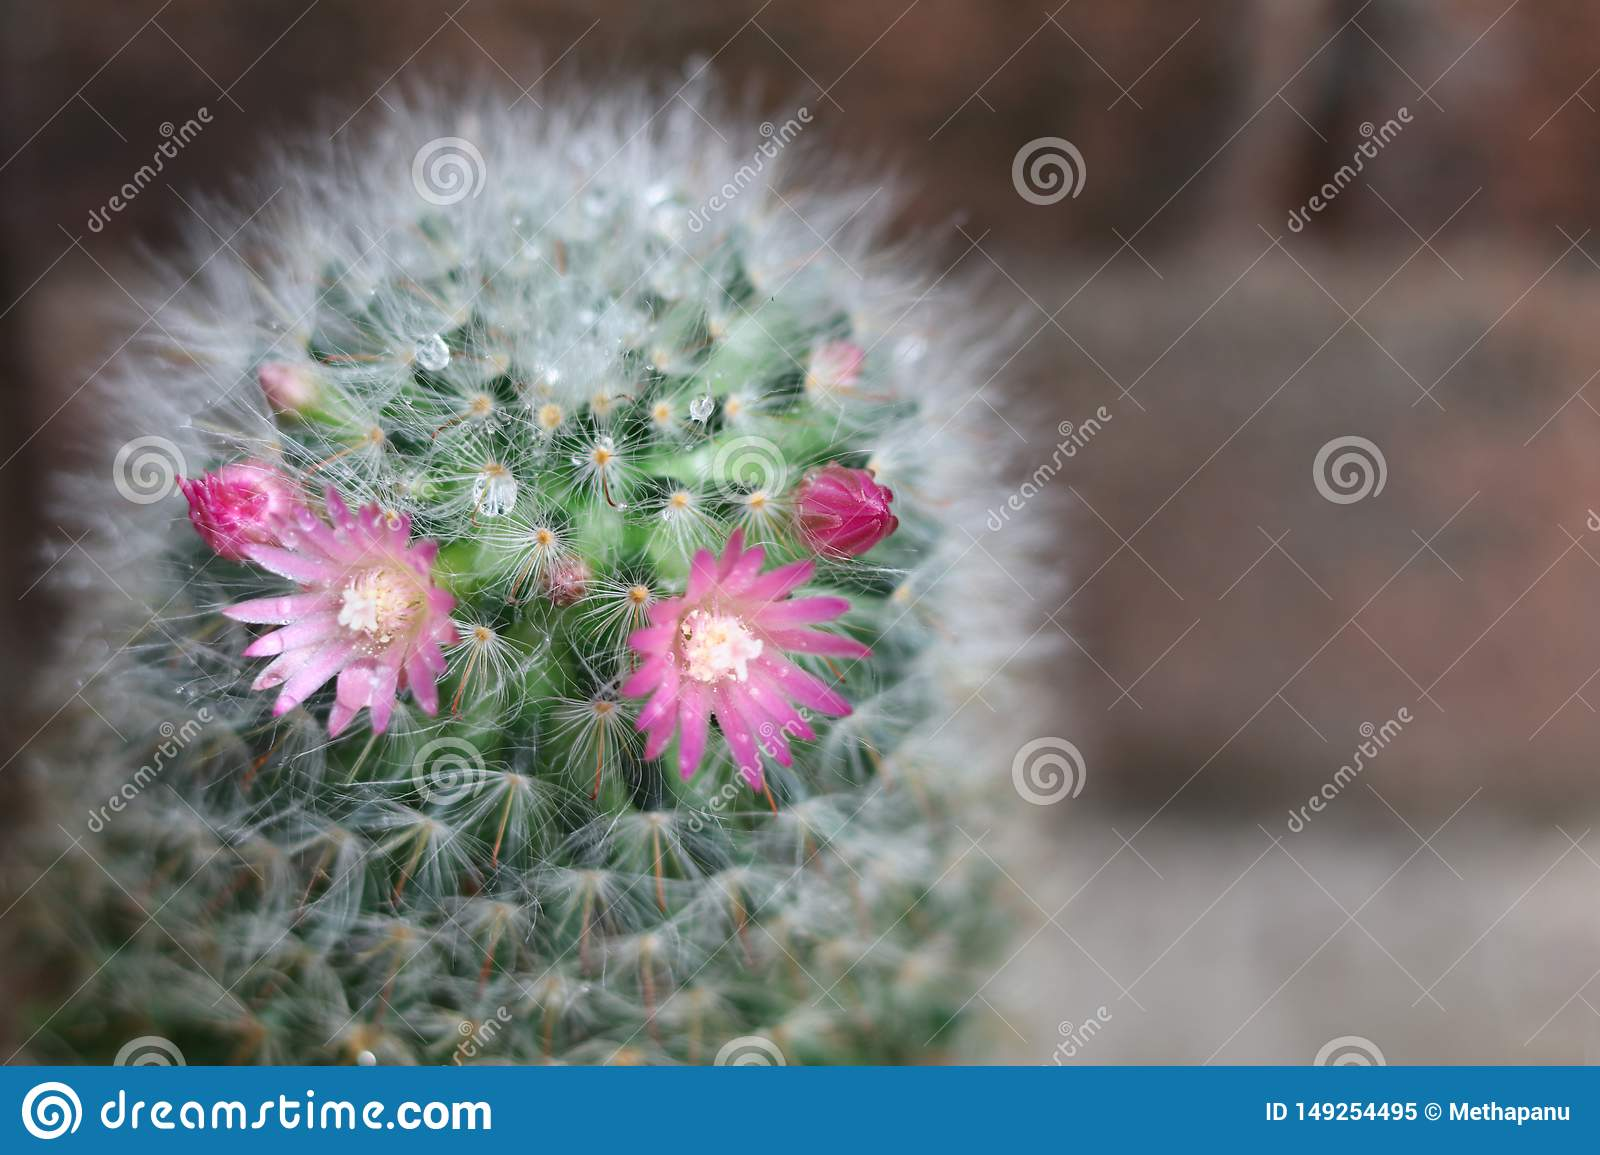 Cactus with flower blooming